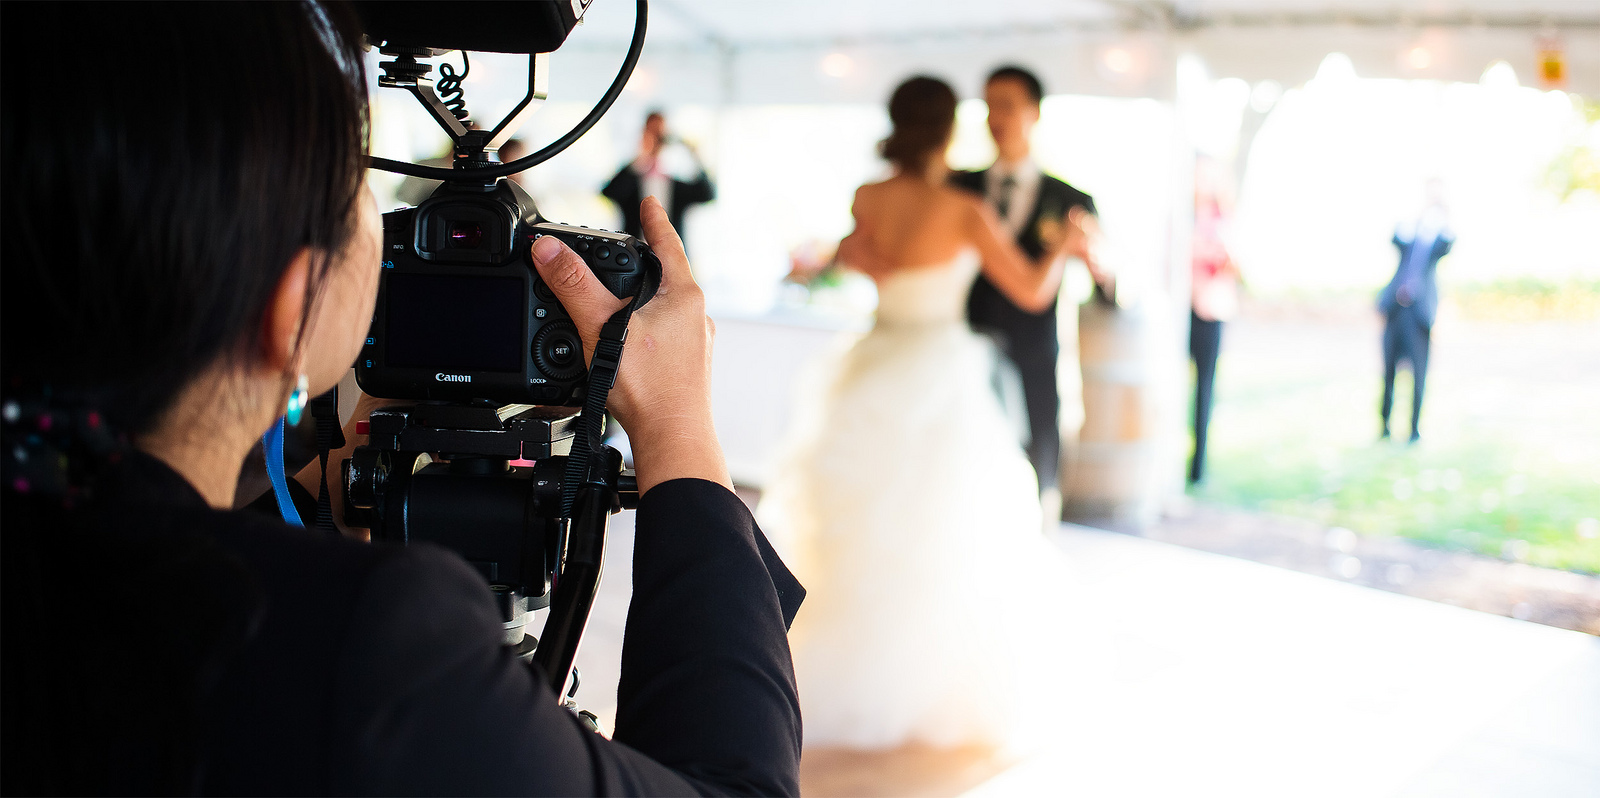 Wedding videography or photography!  What you are going to choose?